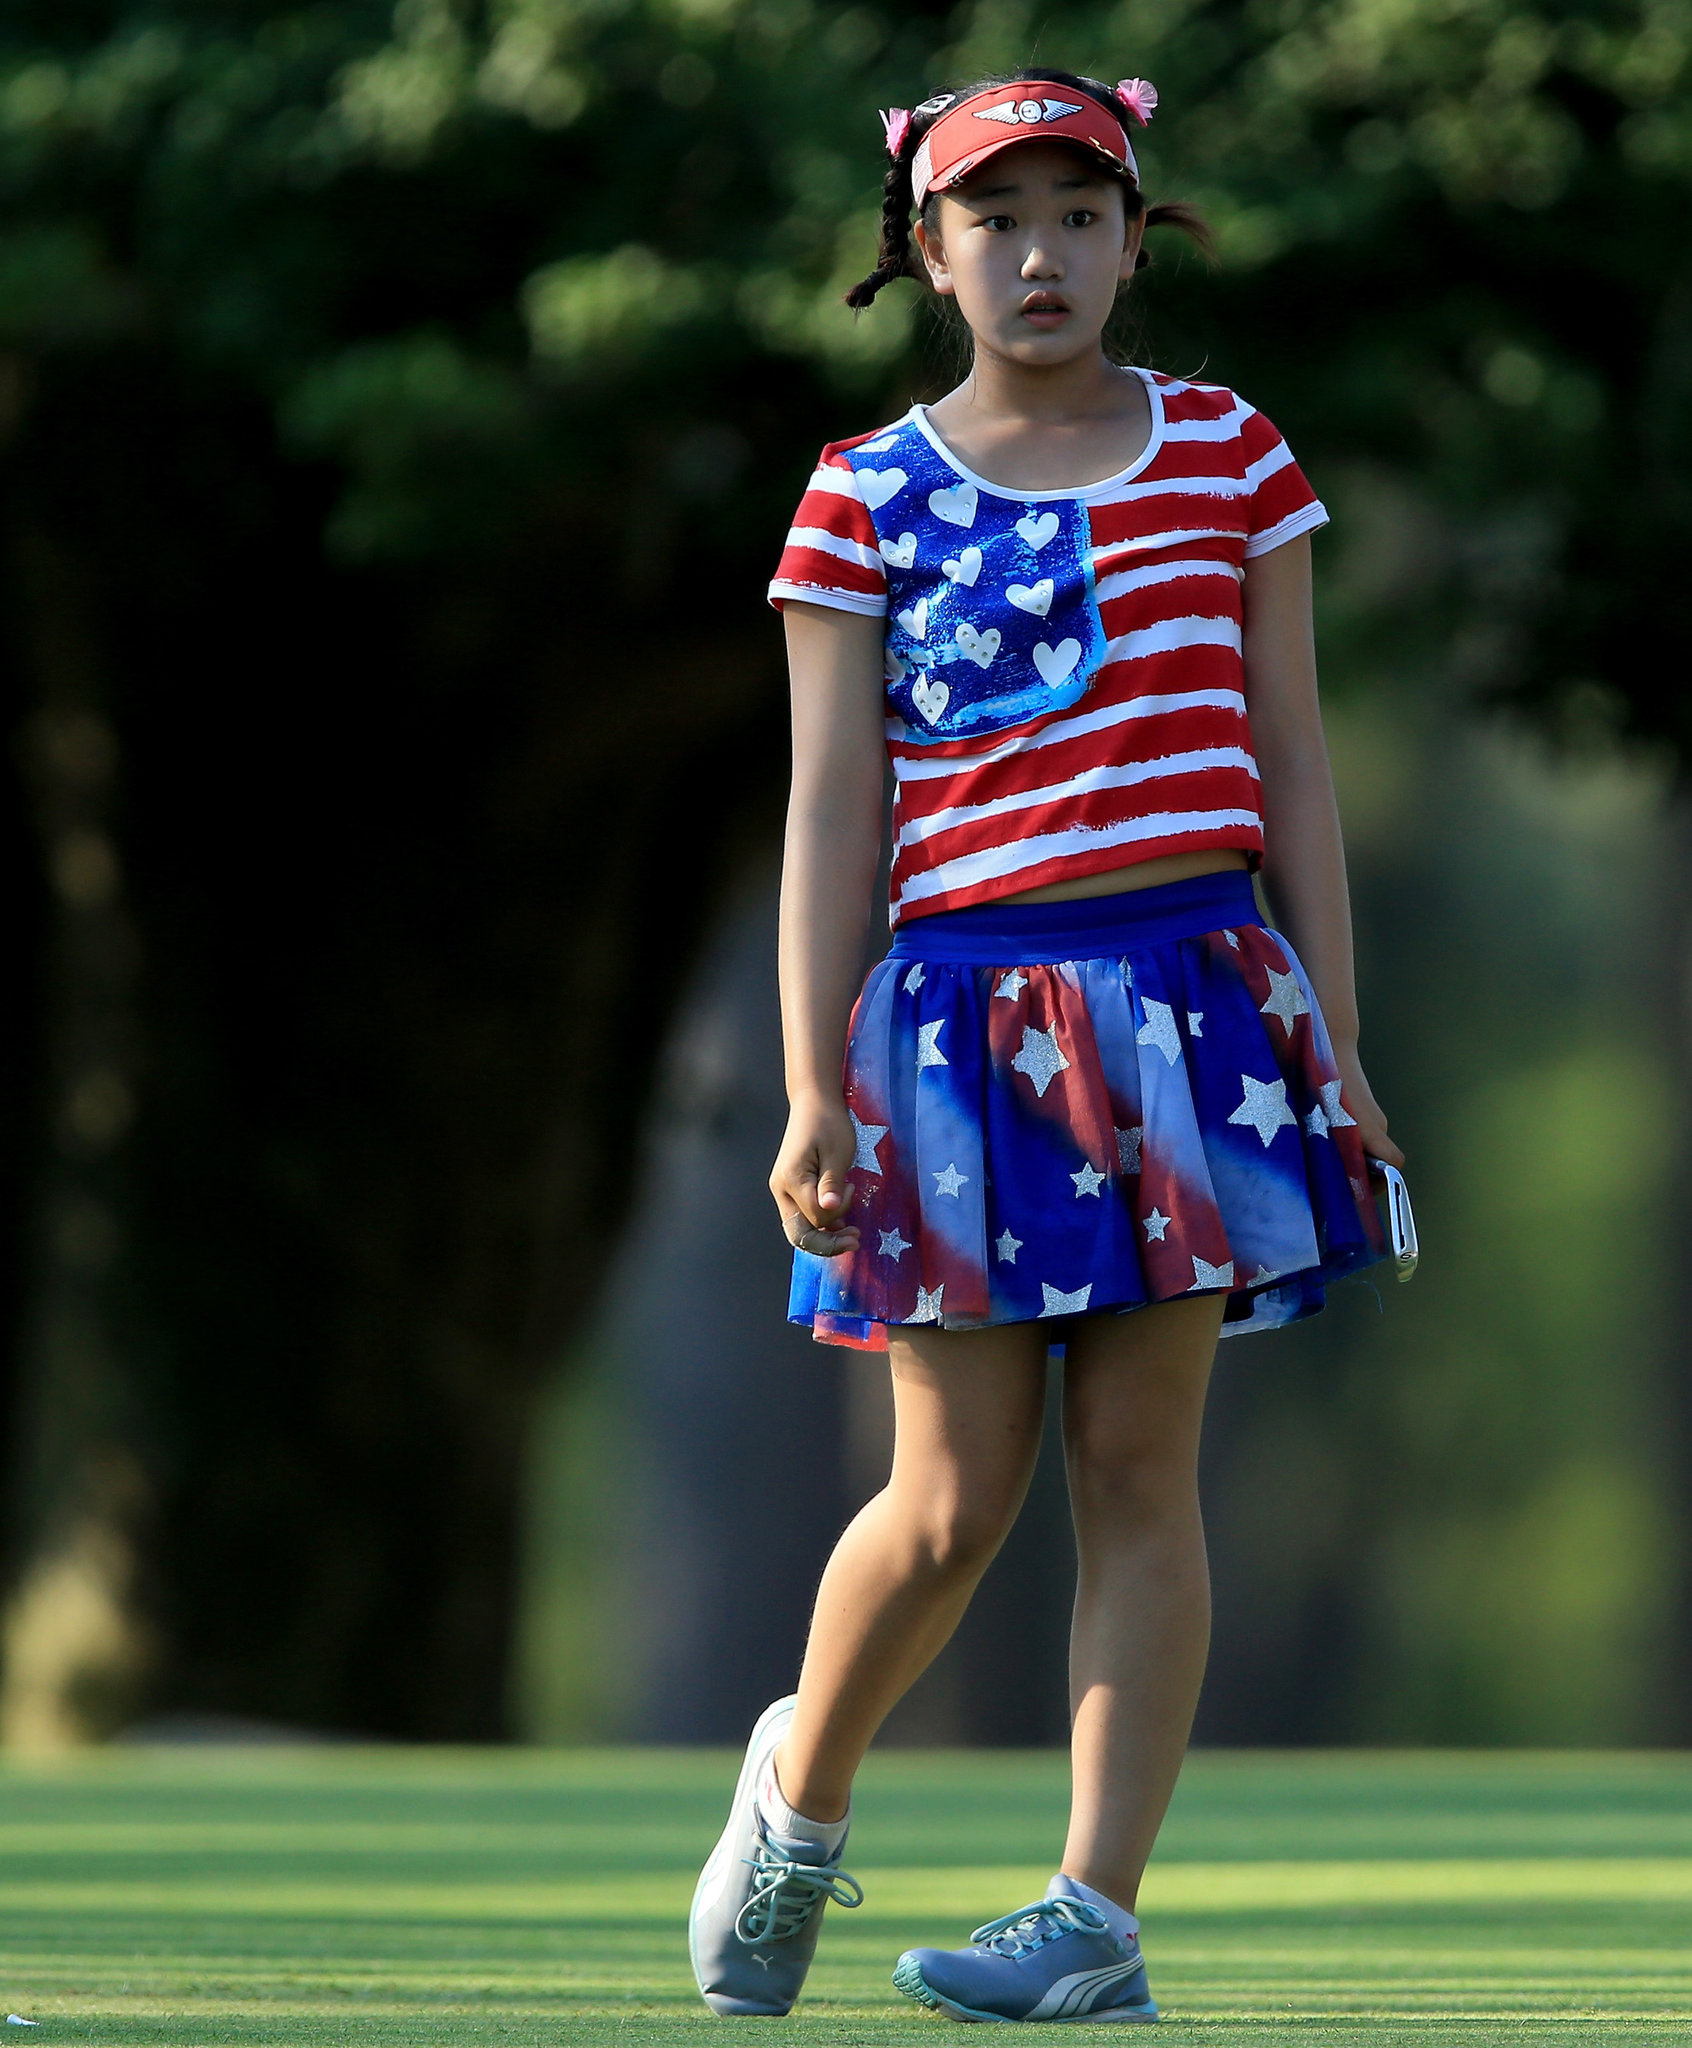 Lucy Li, 11, Tops a 78 With Ice Cream at the U.S. Women's ...